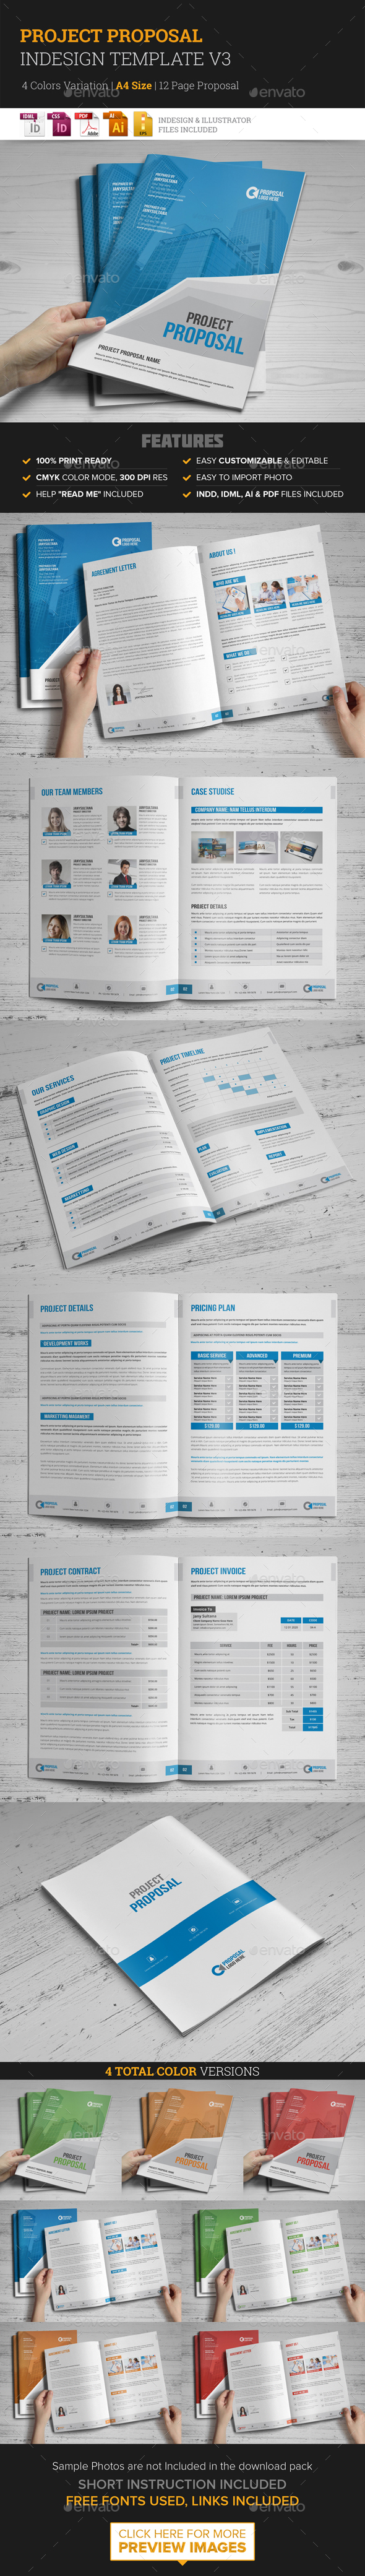 Project Proposal InDesign Template v3  - Proposals & Invoices Stationery